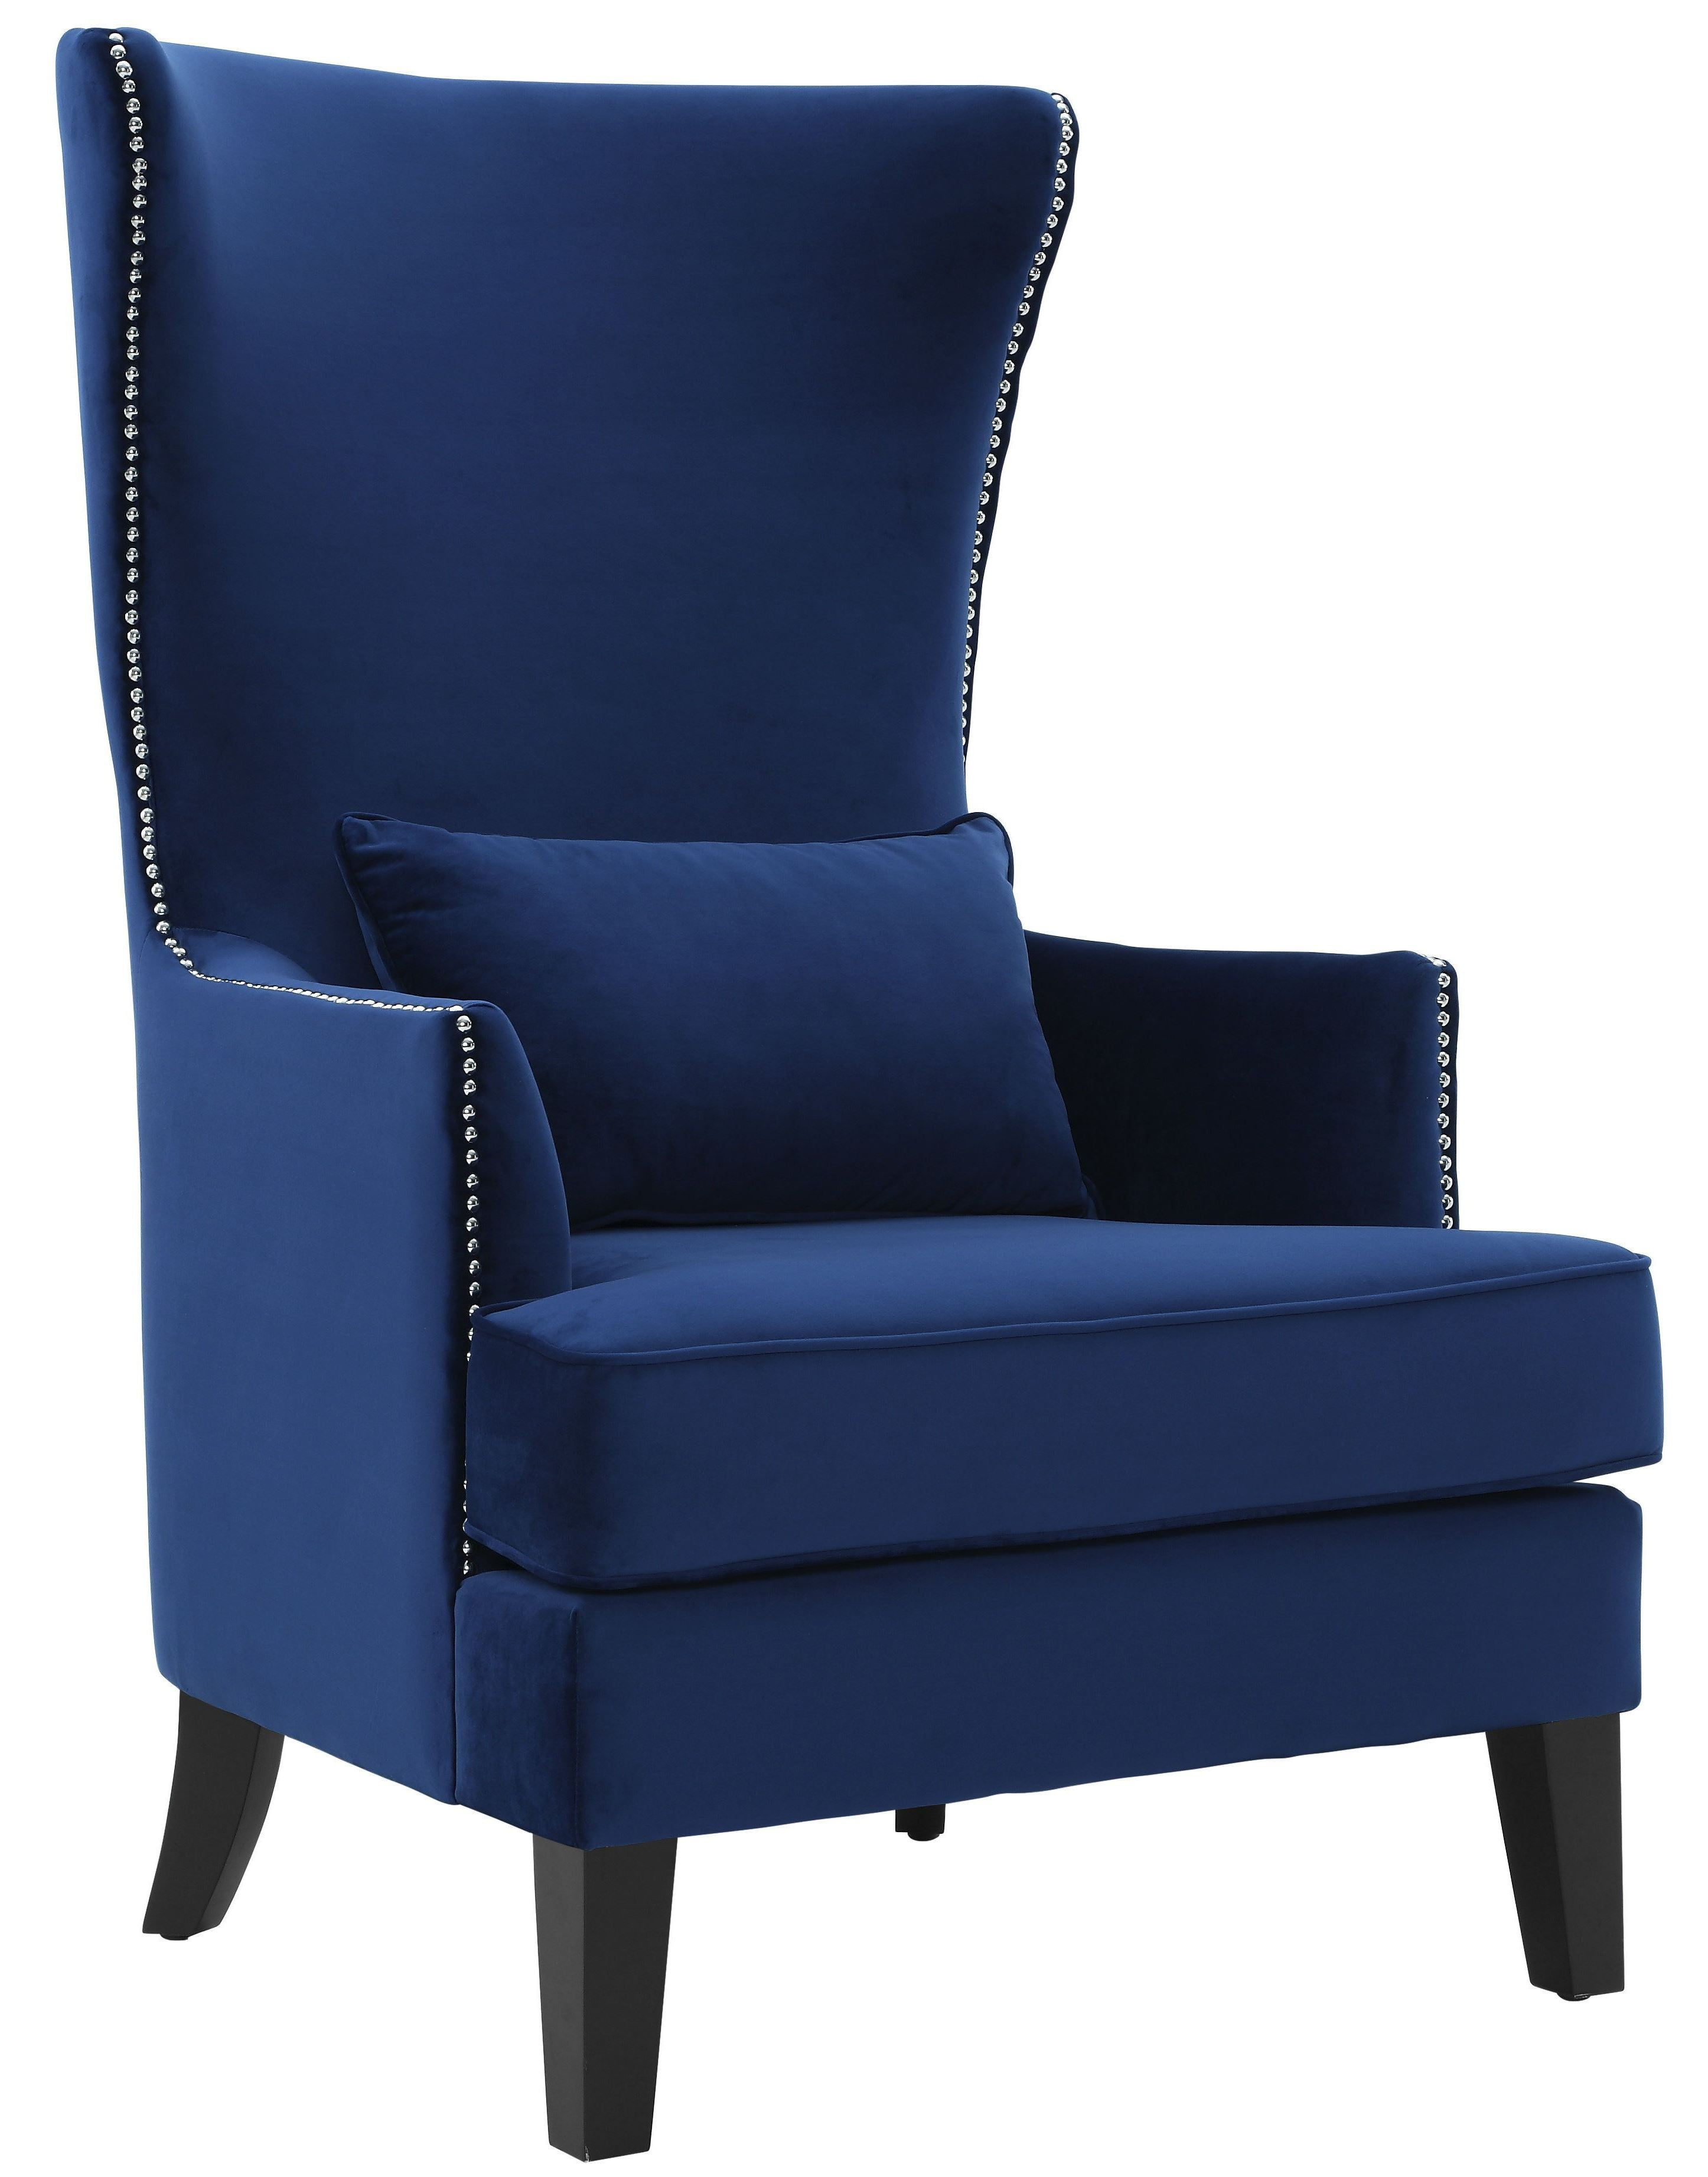 Bristol Navy Tall Chair From Tov Coleman Furniture